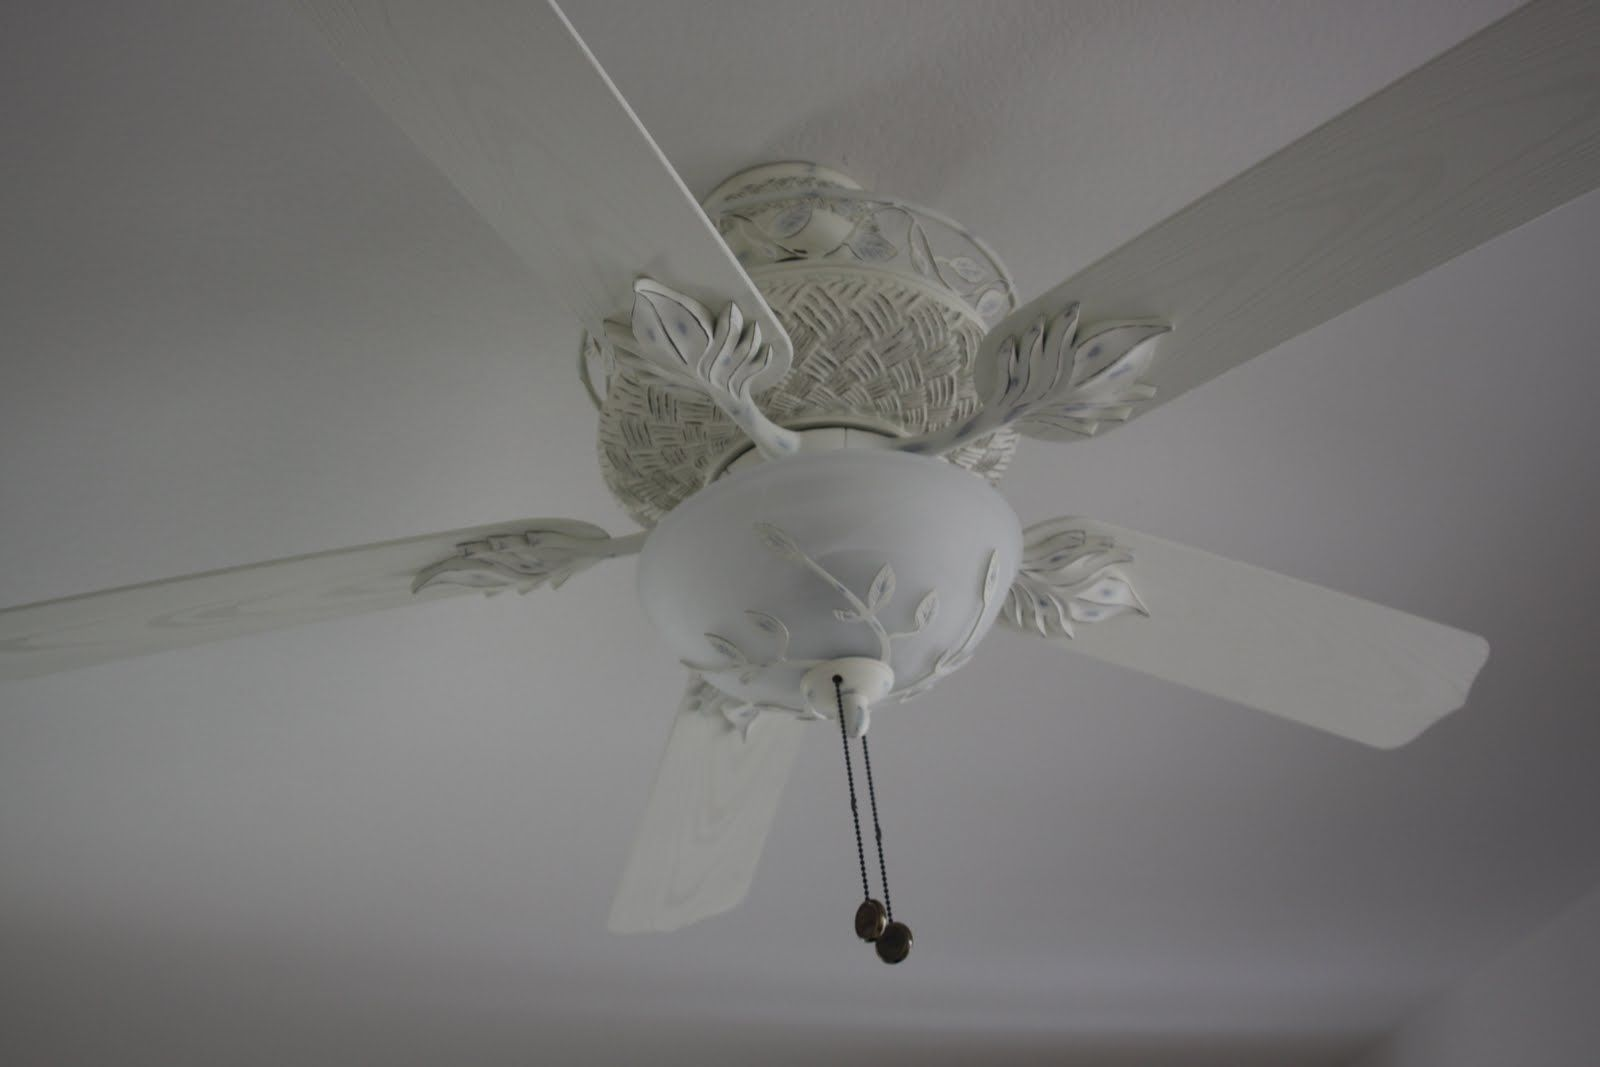 Beach cottage ceilig fan shabby chic ceiling fan ceiling systems beach cottage ceilig fan shabby chic ceiling fan ceiling systems aloadofball Image collections